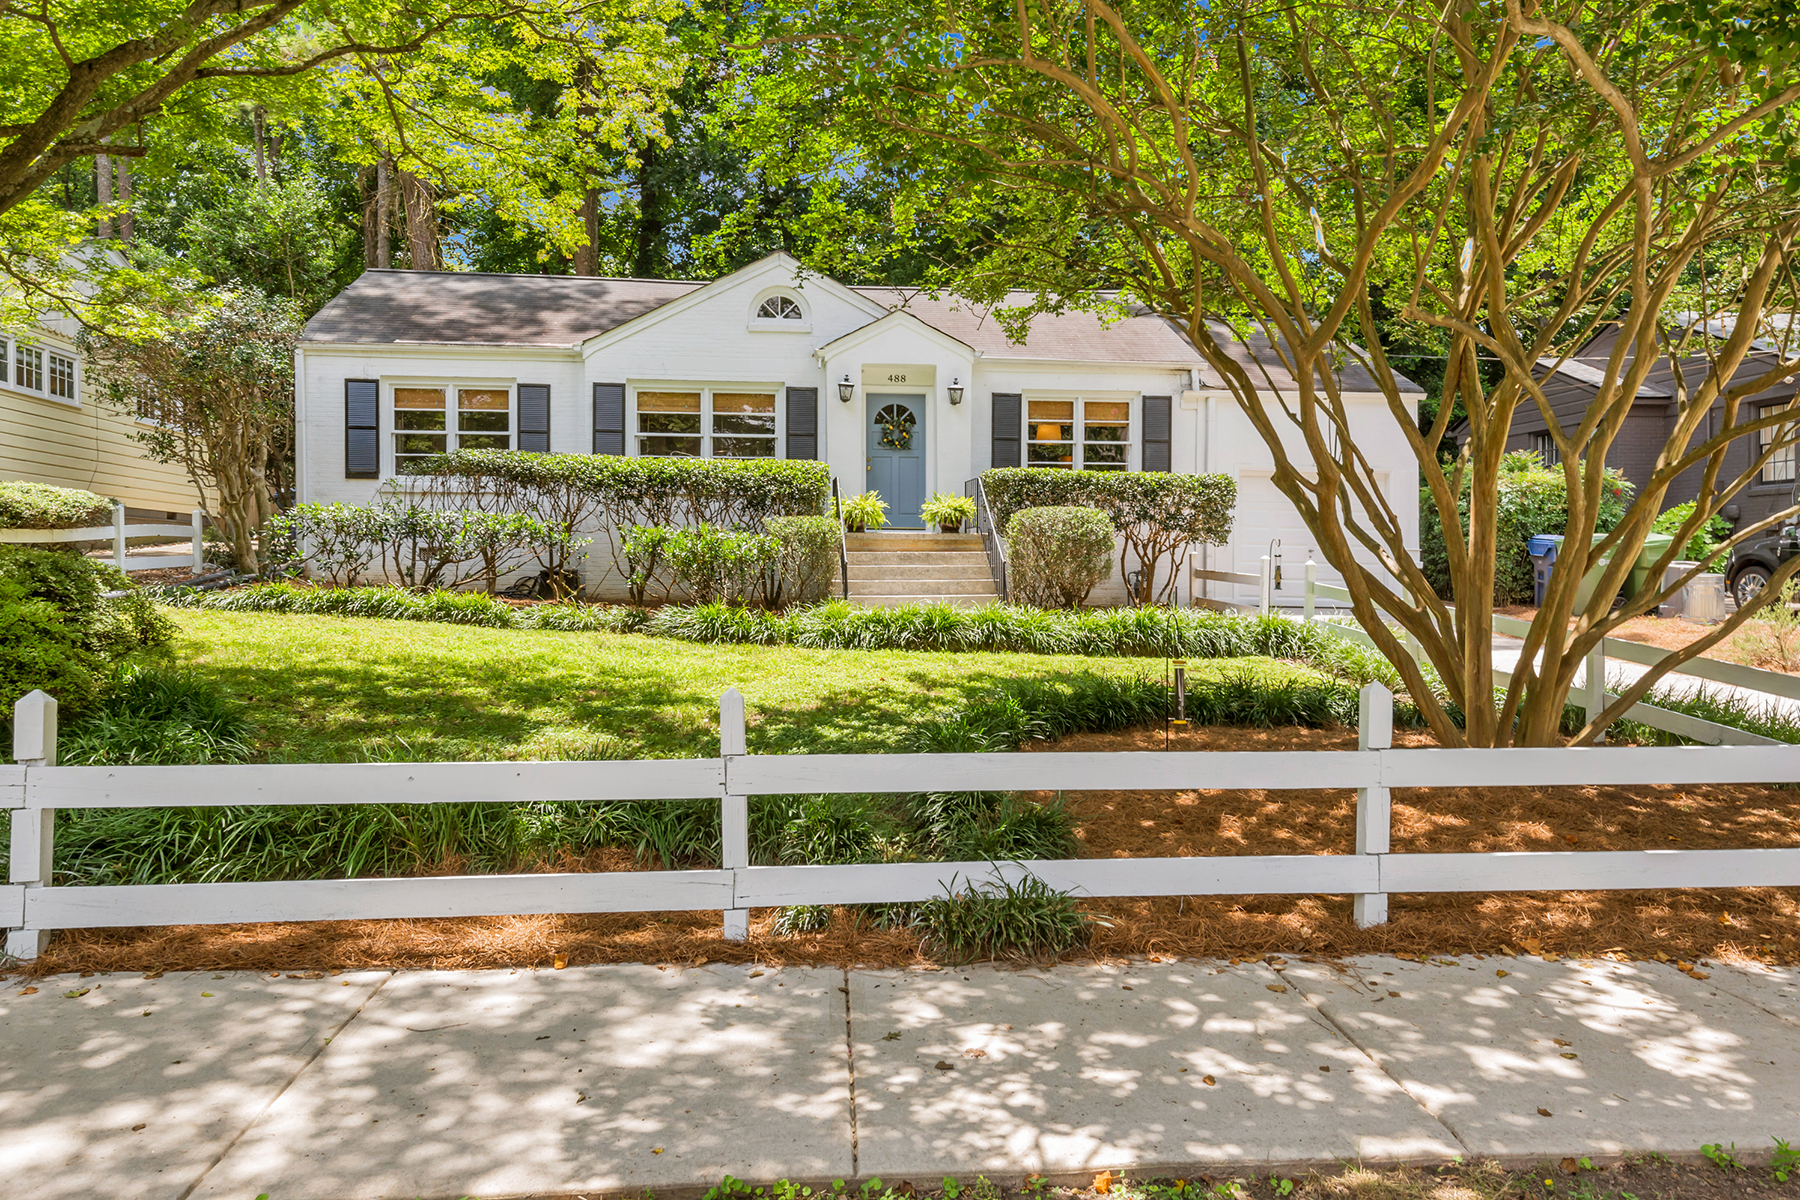 Single Family Home for Sale at Classic Collier Hills Cape Cod 488 Overbrook Drive NW Atlanta, Georgia 30318 United States